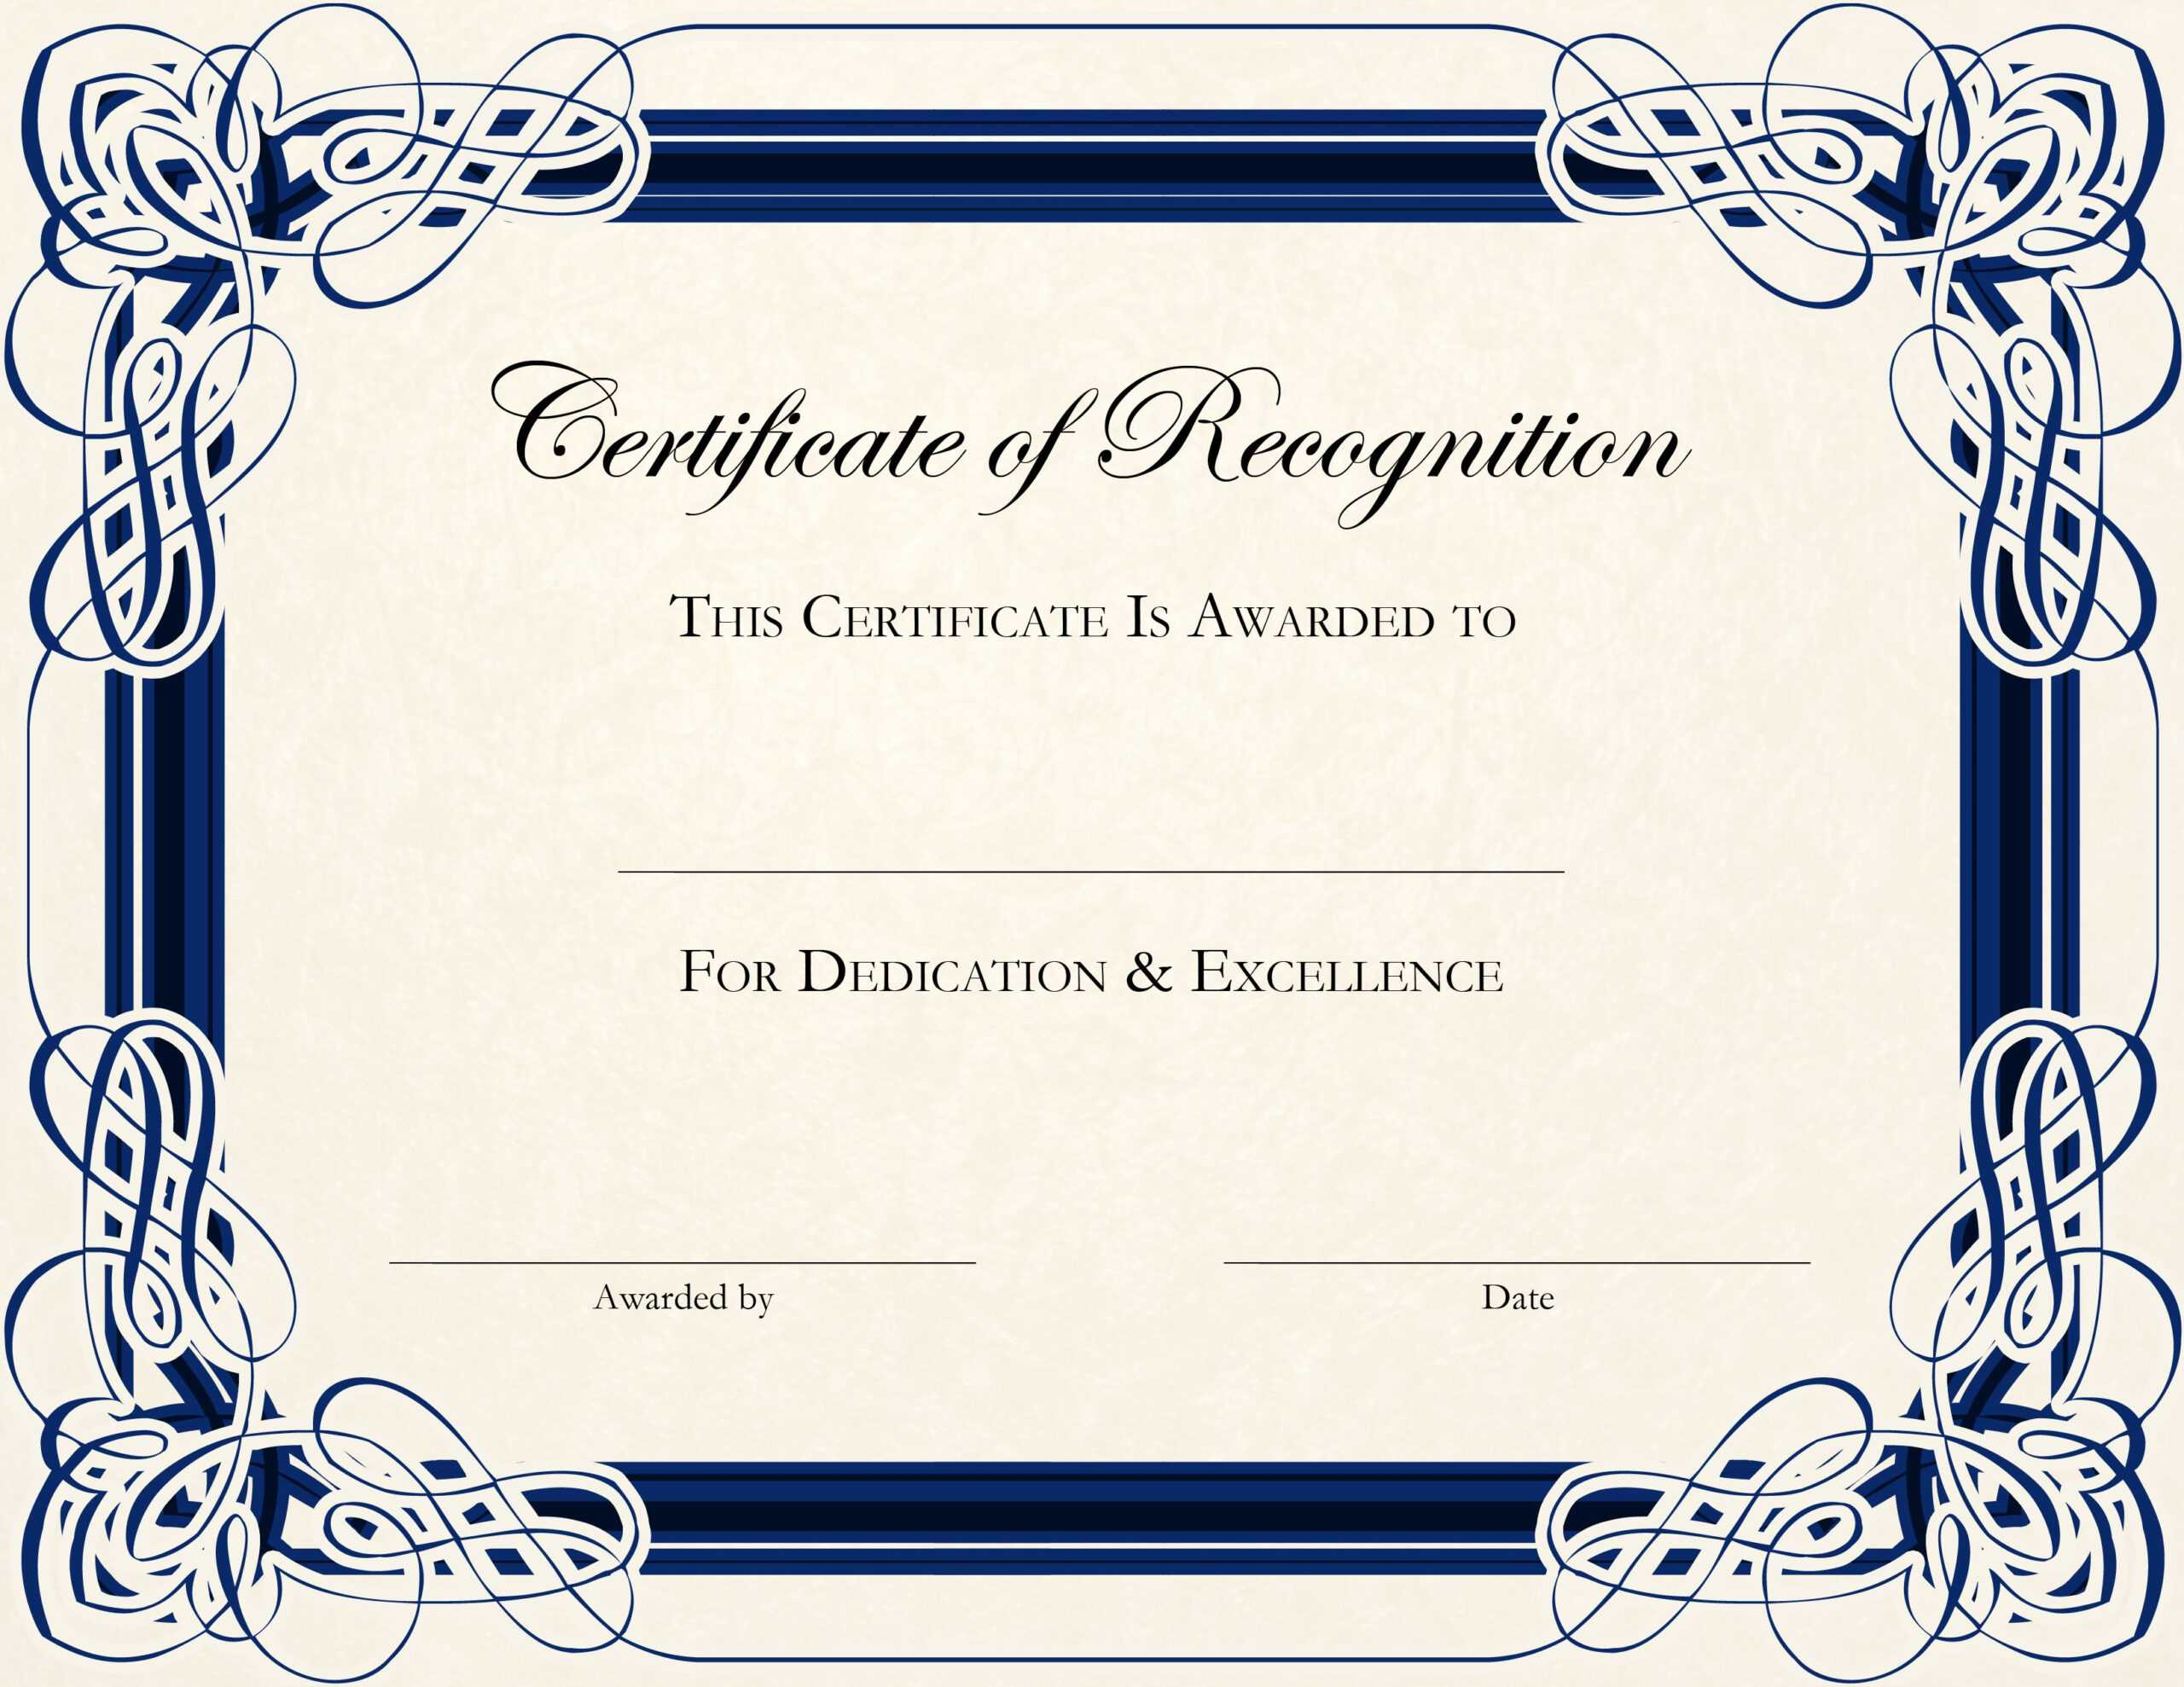 Certificate Template Designs Recognition Docs | Certificate In Template For Certificate Of Award